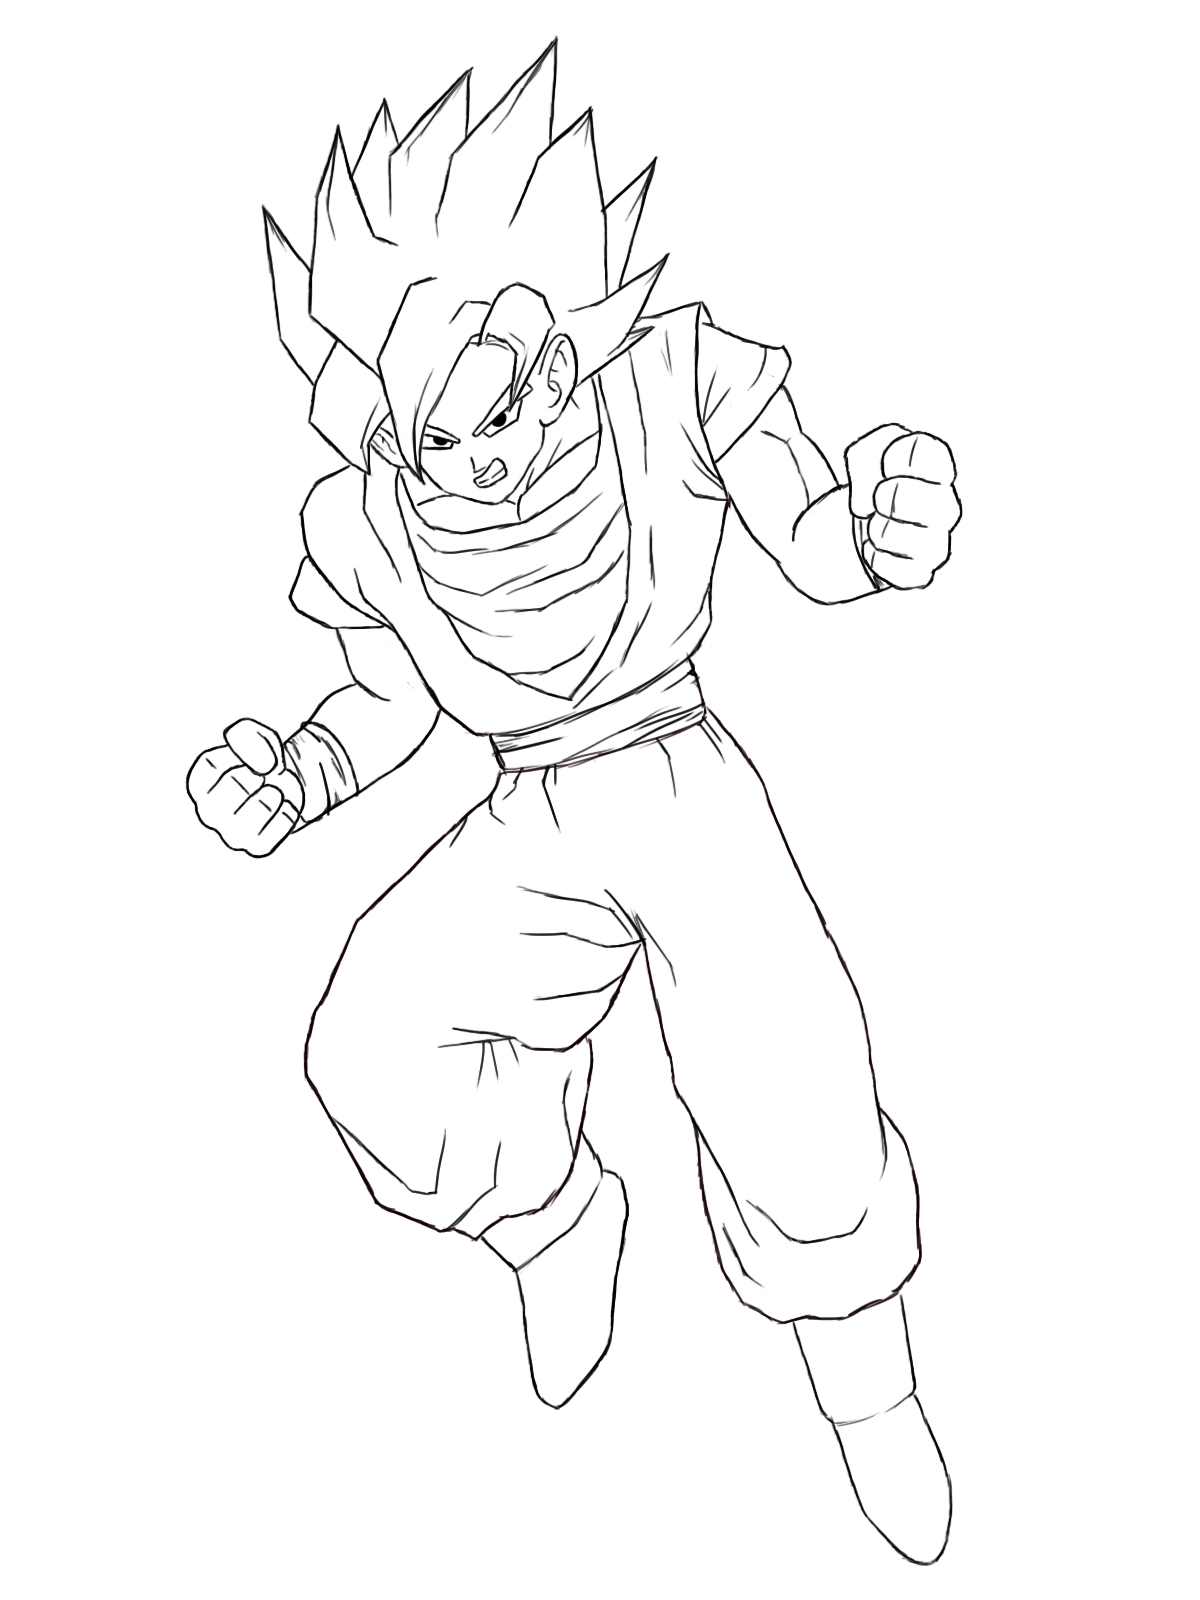 how to draw dragon ball z how to draw dragon ball z super saiyan how to draw a z ball draw how dragon to